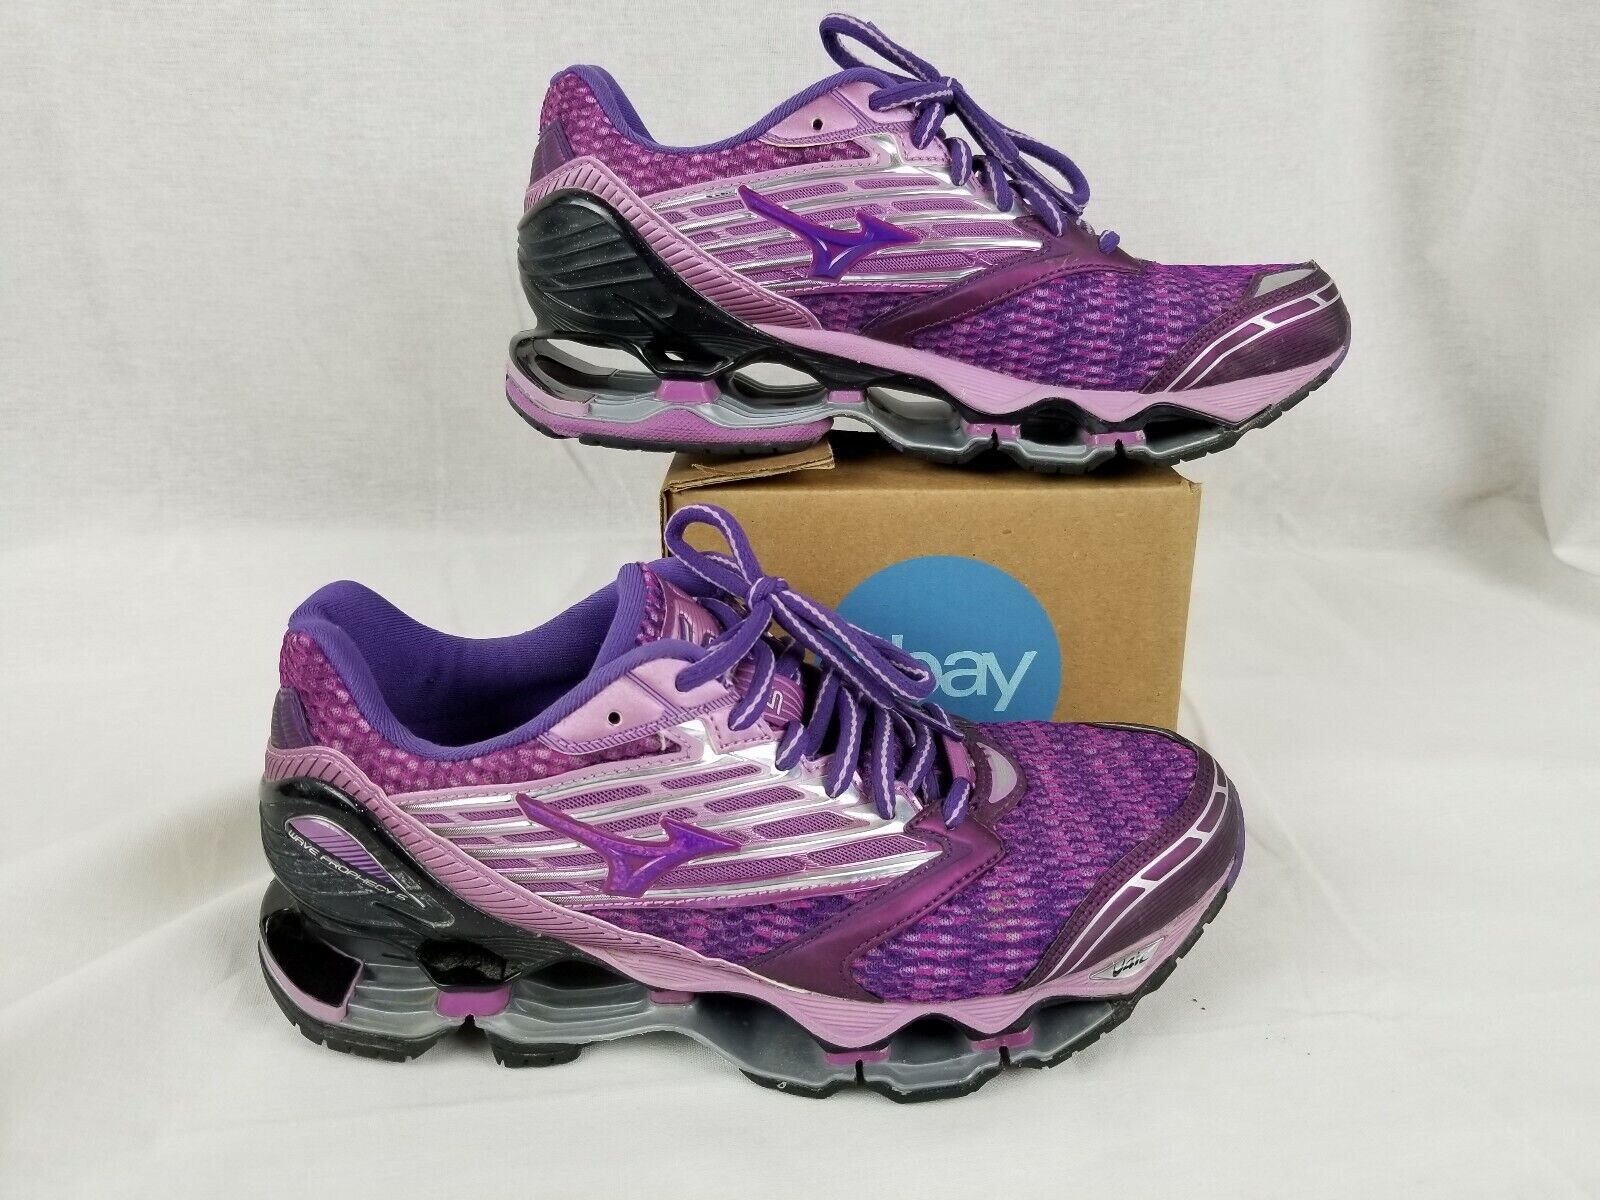 Mizuno Womens Wave Prophecy 5 Running shoes  Hyacinth purple Royal Purple size 8